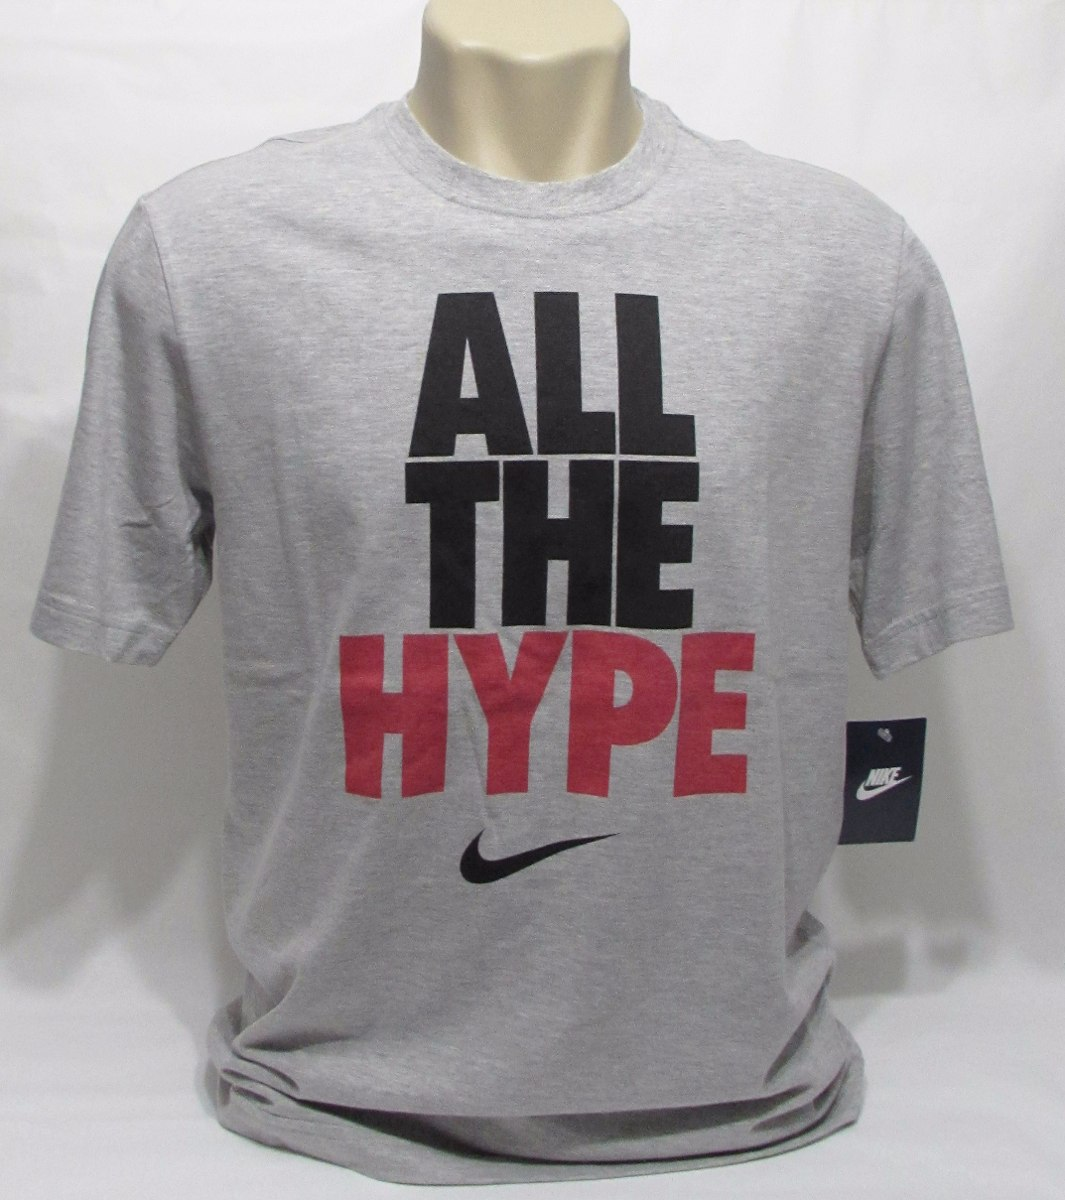 4e9b6d859fe55 Camiseta Nike All The Hype Aqui Só Original C  Nf De 99 Por - R  68 ...